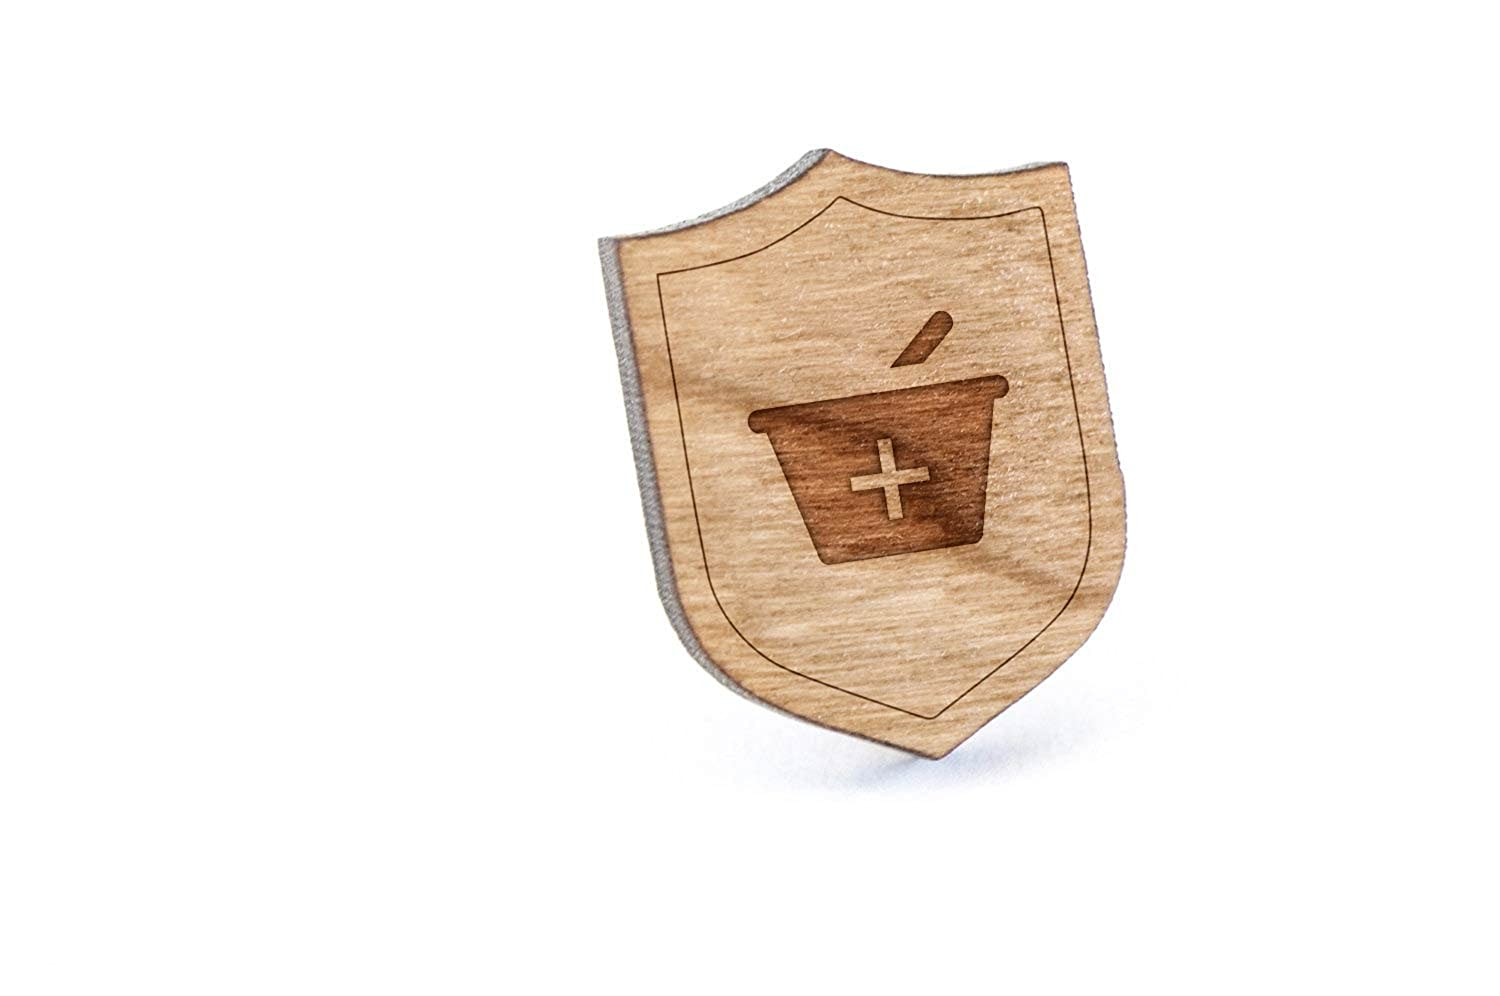 top Pharmacy Symbol Lapel Pin, Wooden Pin And Tie Tack | Rustic And Minimalistic Groomsmen Gifts And Wedding Accessories get discount